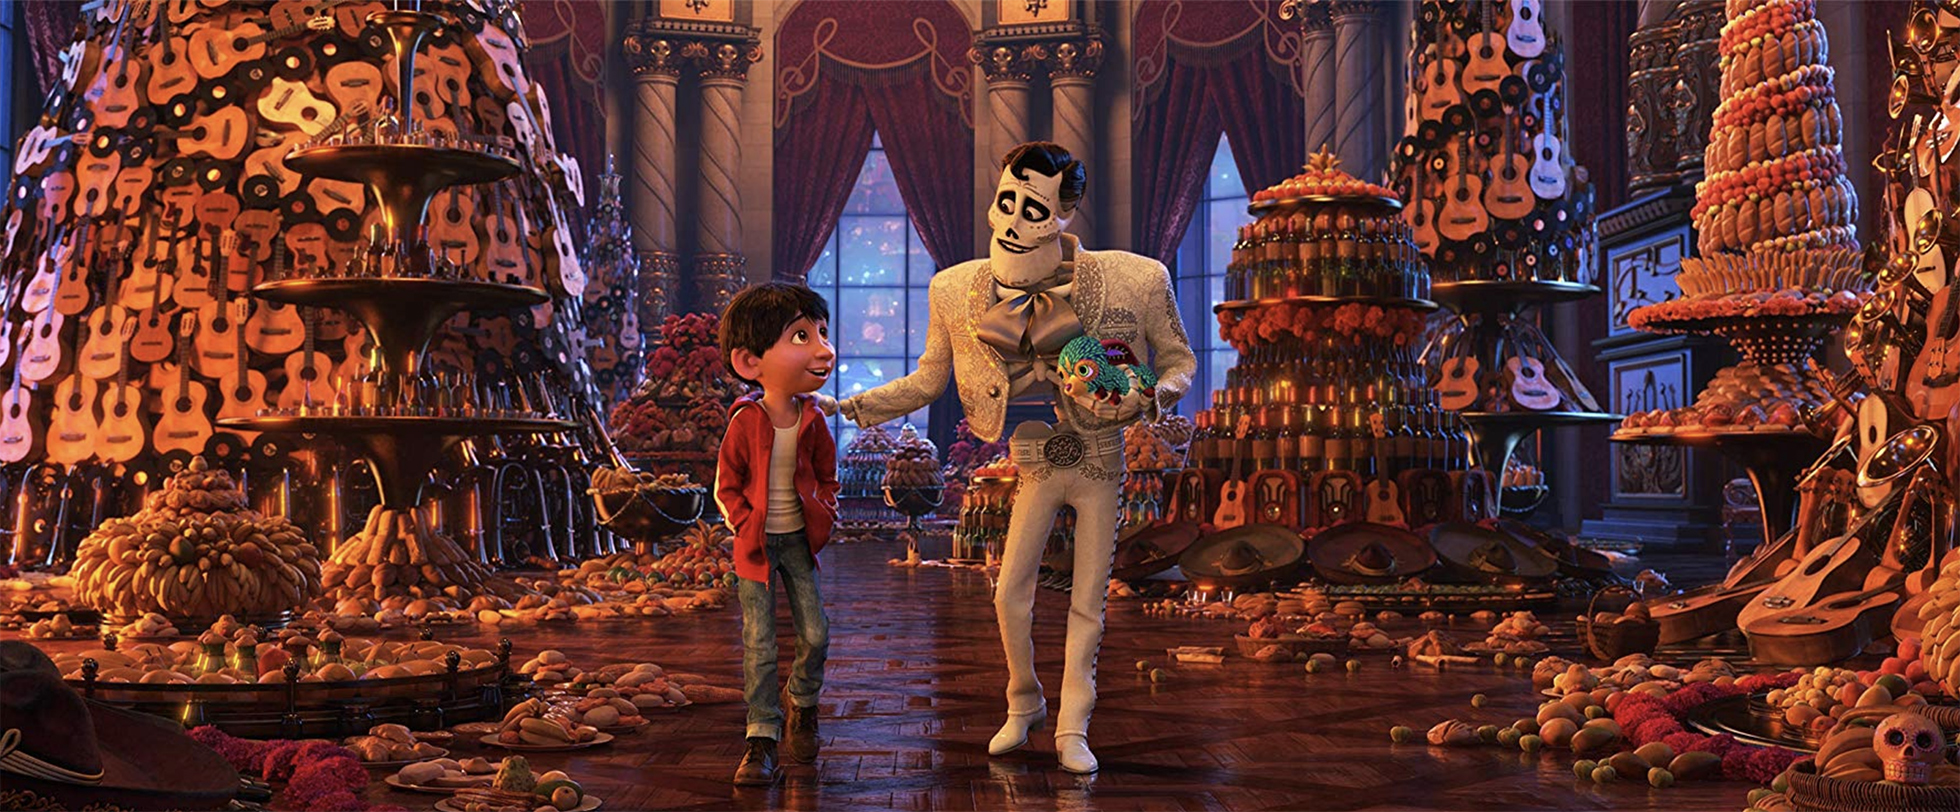 still from Coco of Miguel with the man who he believes to be his father in a room absolutely filled with guitars.